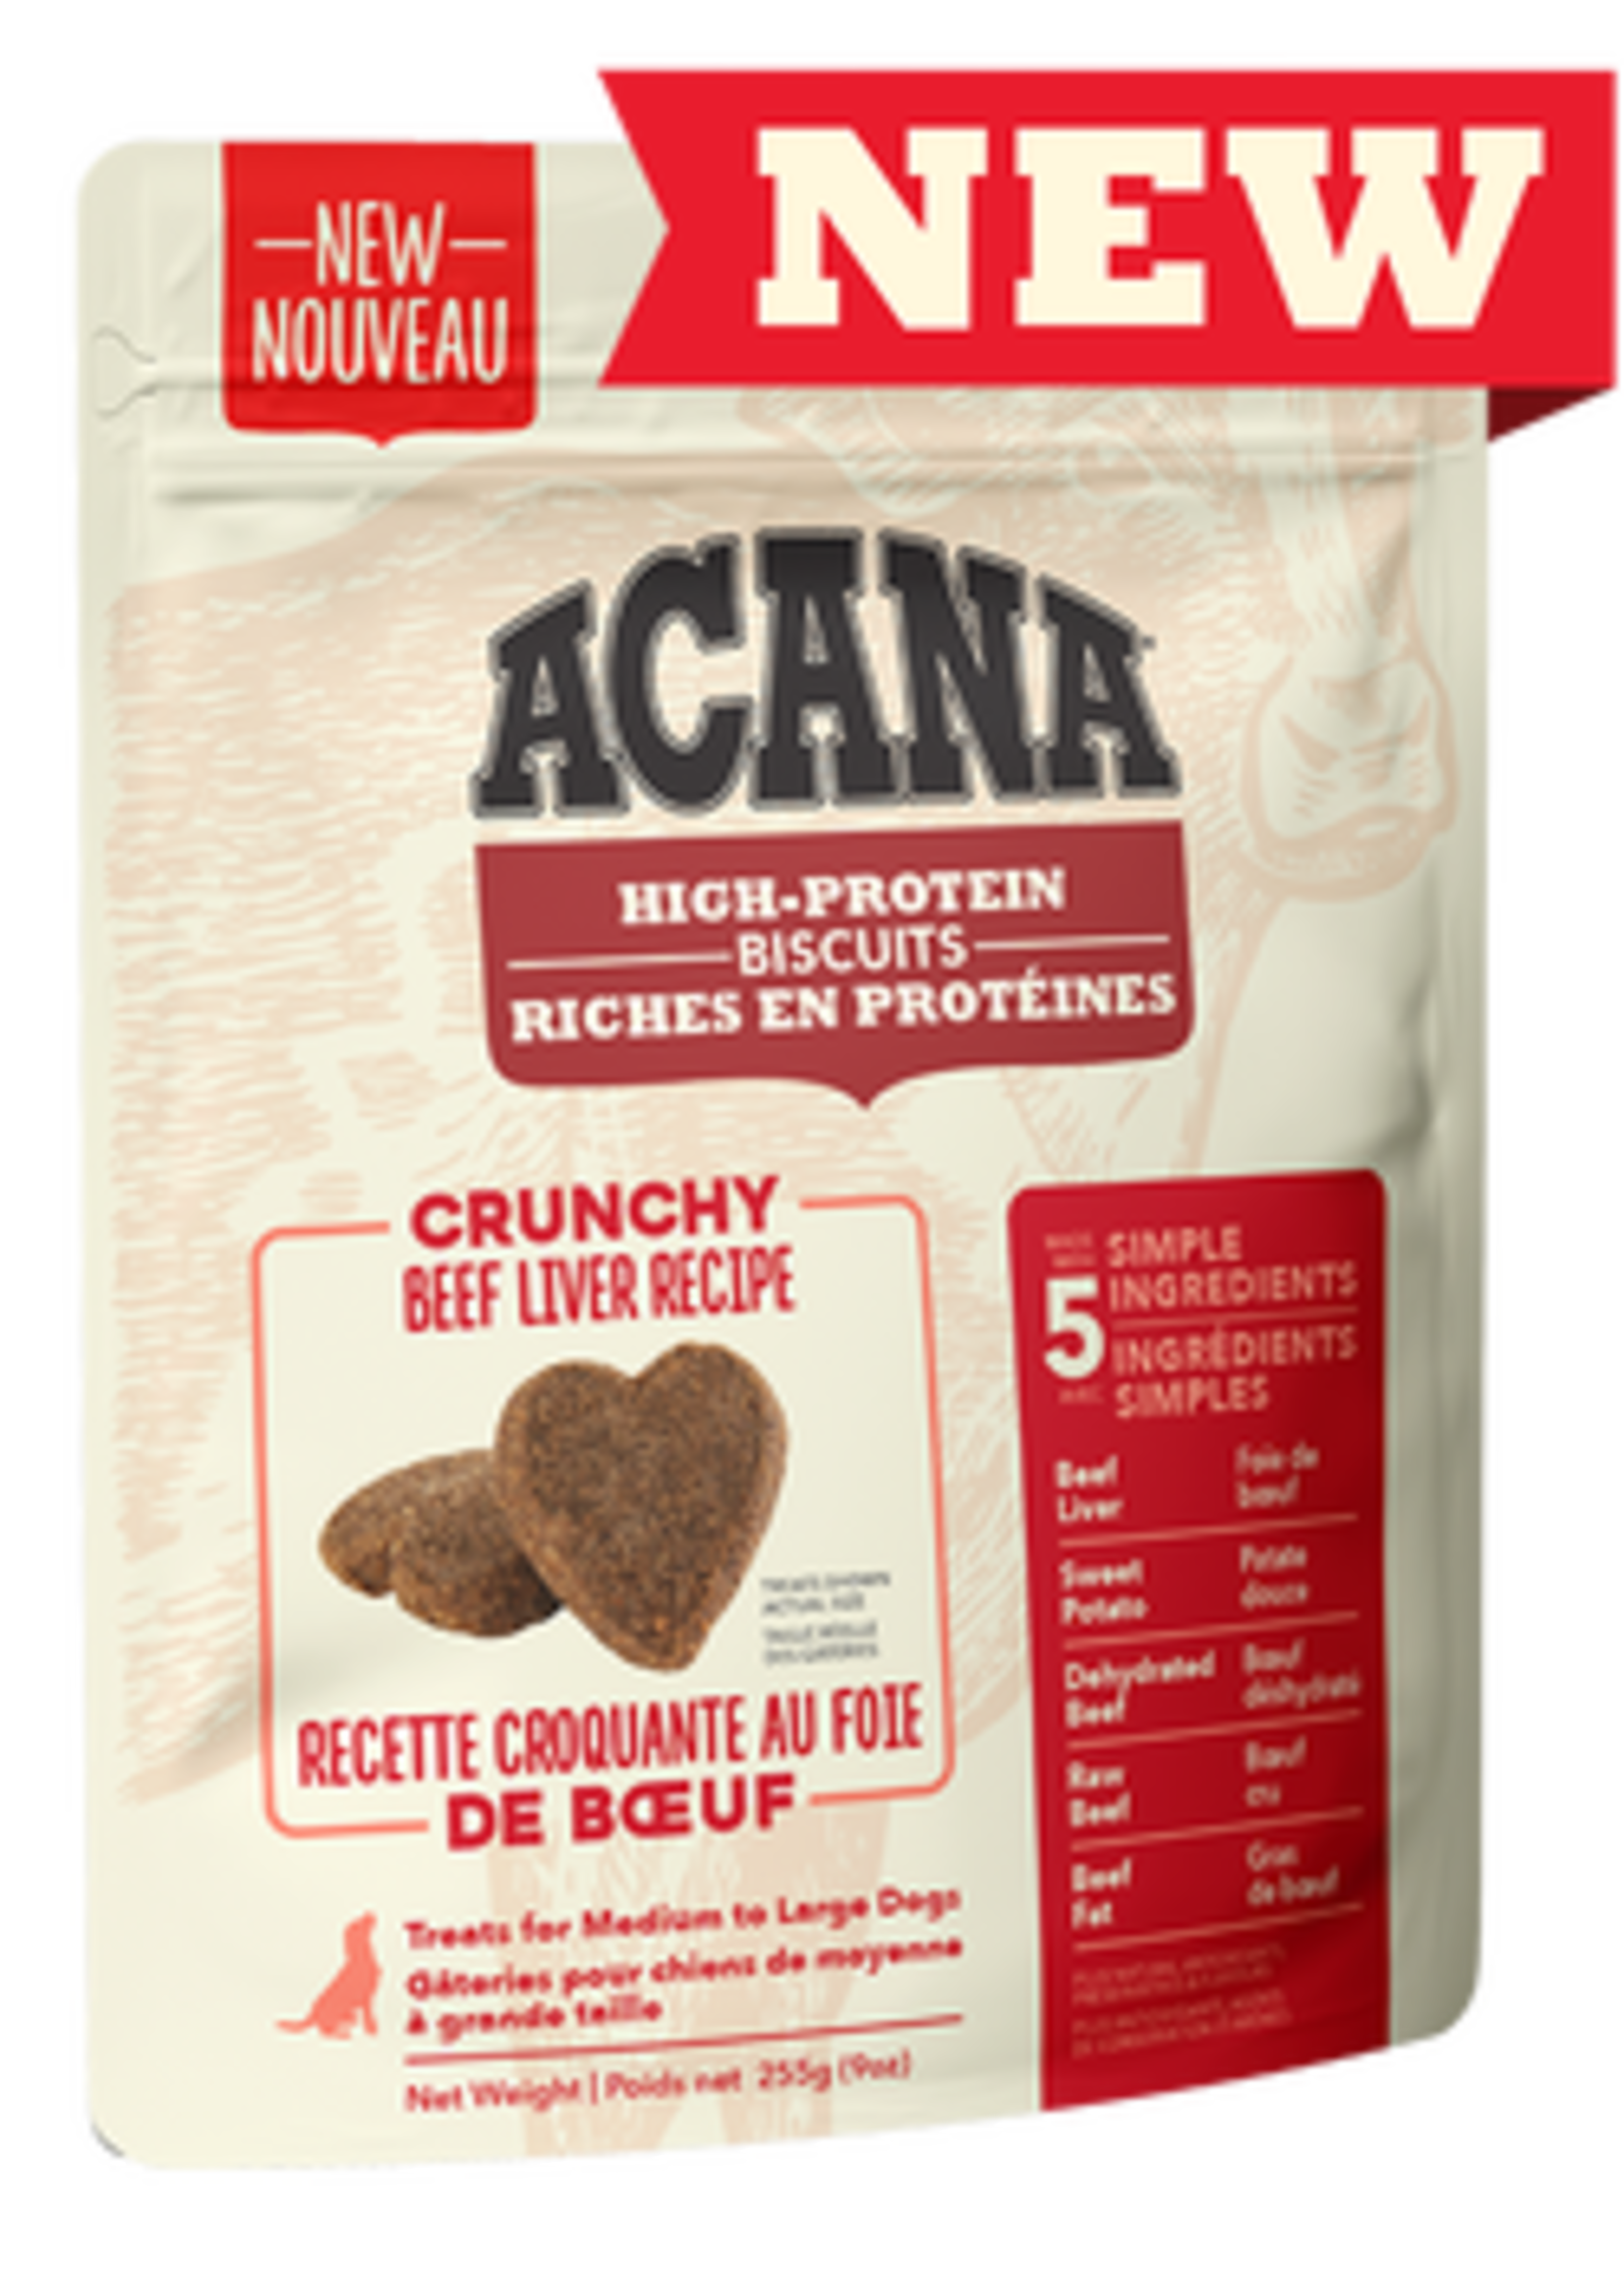 Acana® Acana High-Protein Biscuits, Crunchy Beef Liver Recipe 9oz Large